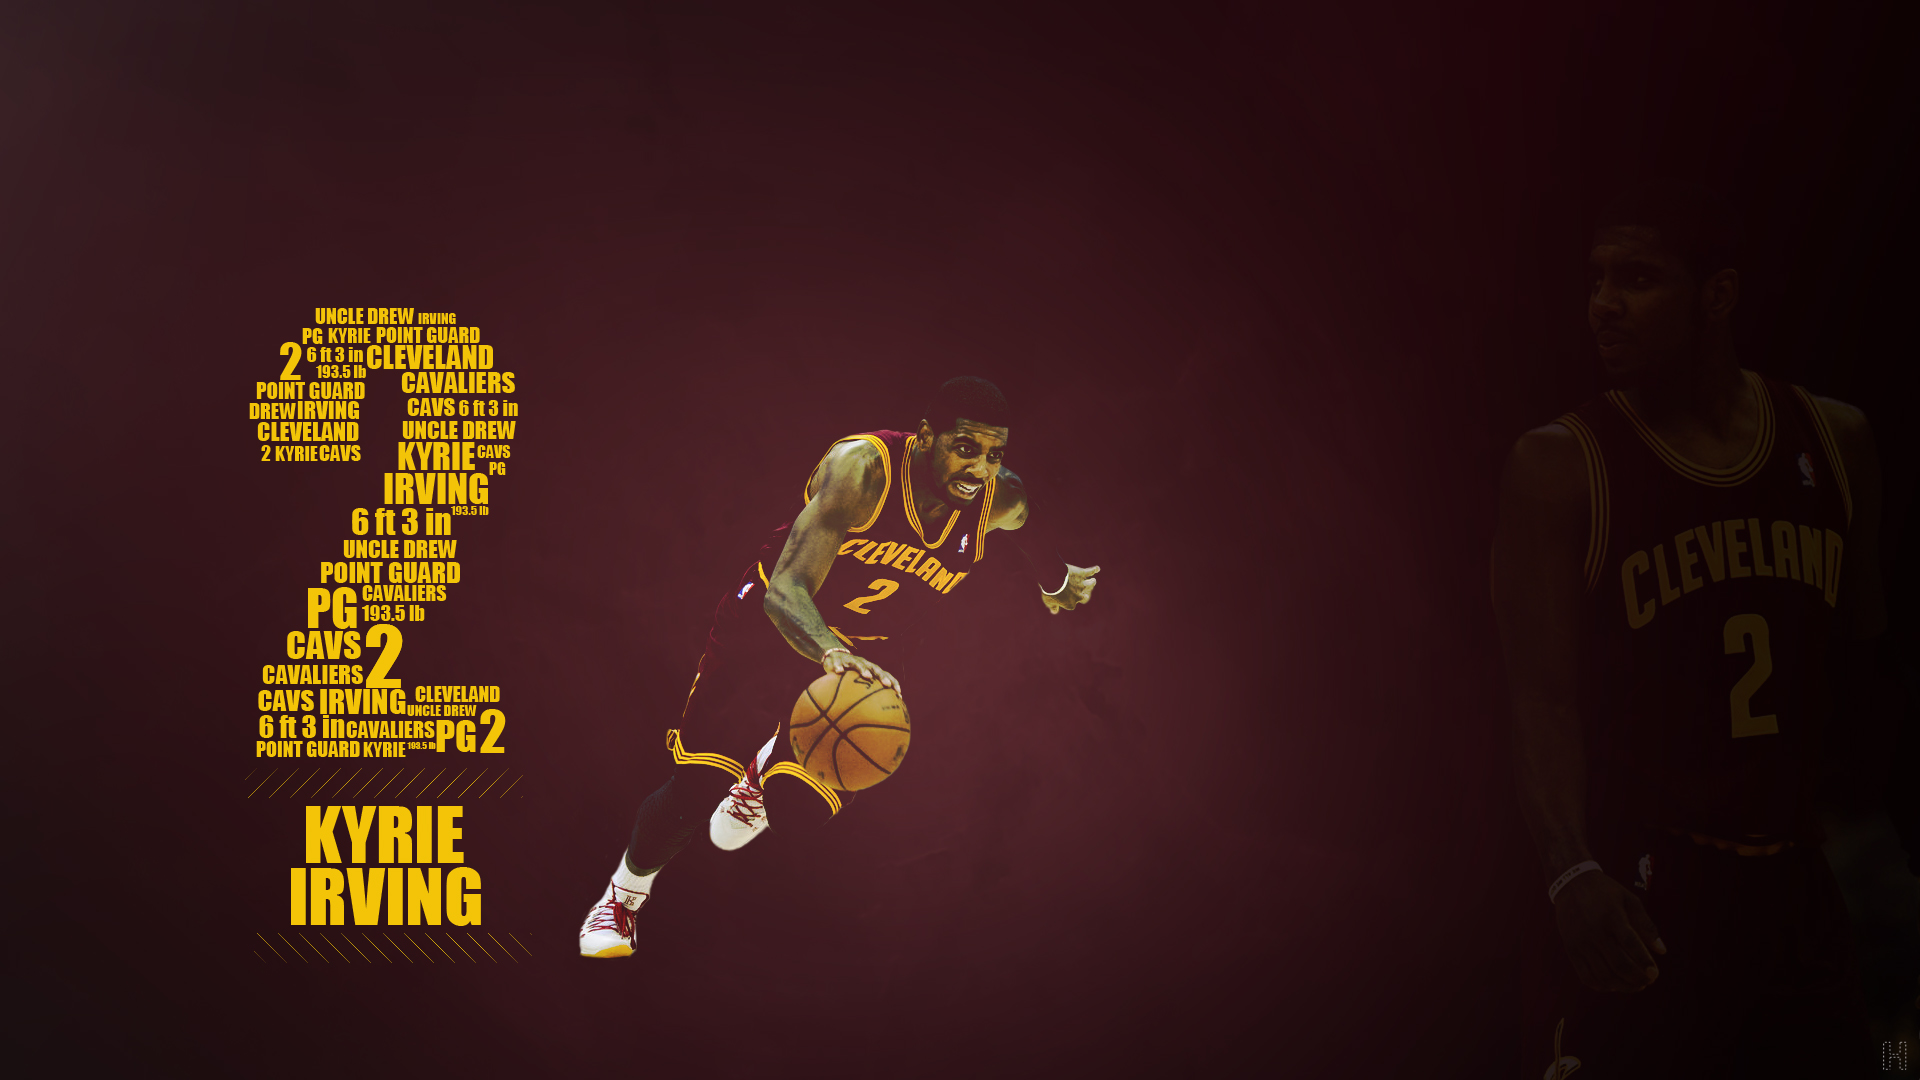 nike basketball wallpaper iphone 5 images